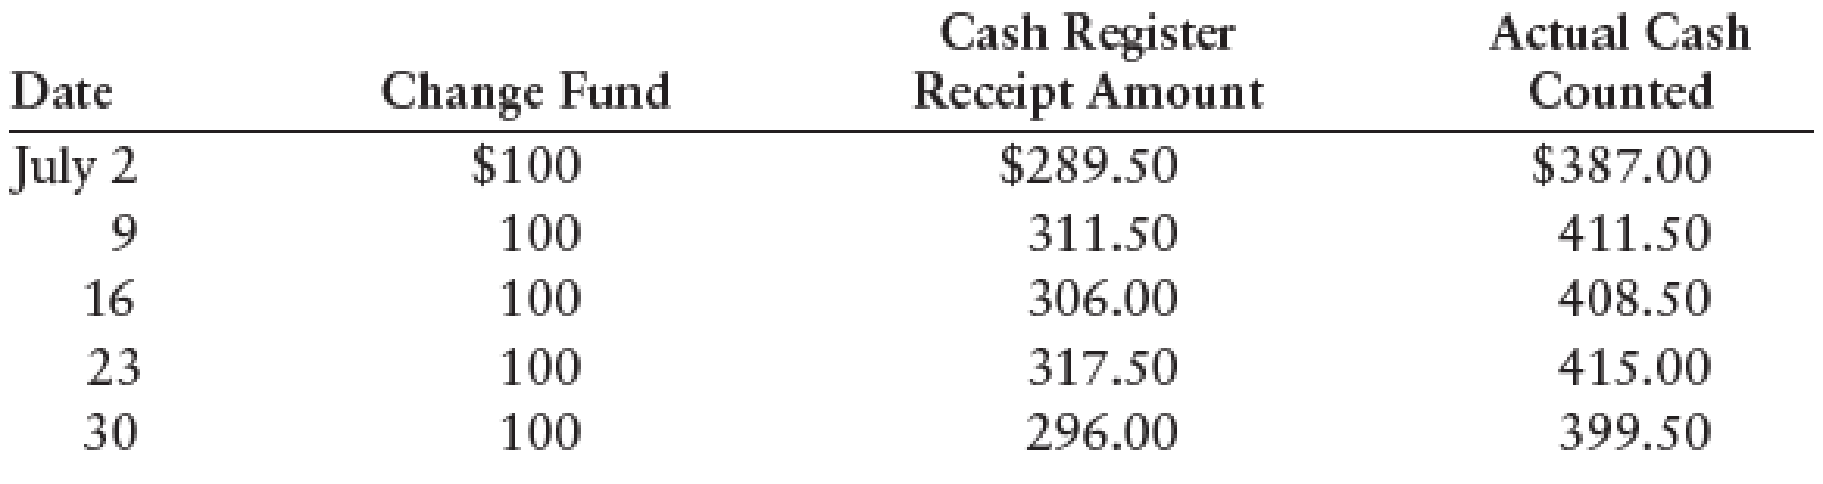 Chapter 7, Problem 11SPA, CASH SHORT AND OVER ENTRIES Listed below are the weekly cash register tape amounts for service fees